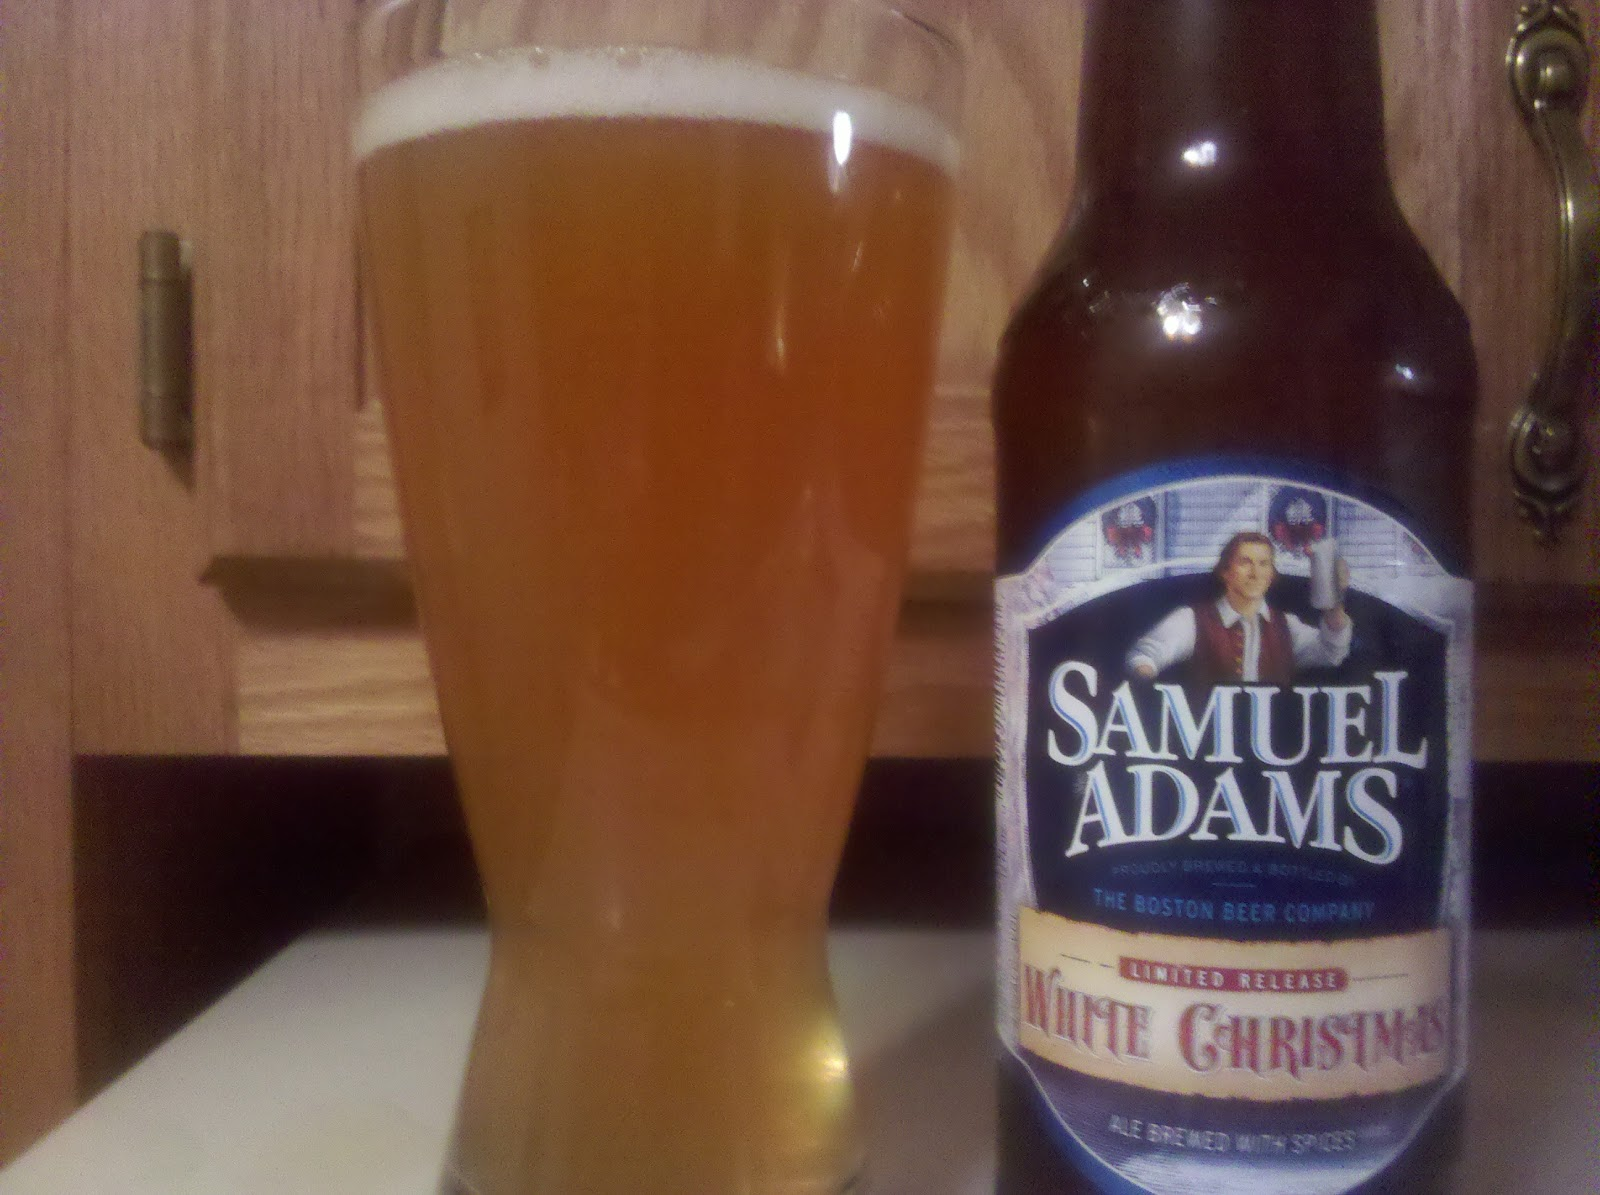 boston beer company 6 essay Assessing the boston beer company inc's past track record of performance is an insightful exercise for investorsit allows us to reflect on whether or not the company has met or exceed expectations, which is a great indicator for future performance.